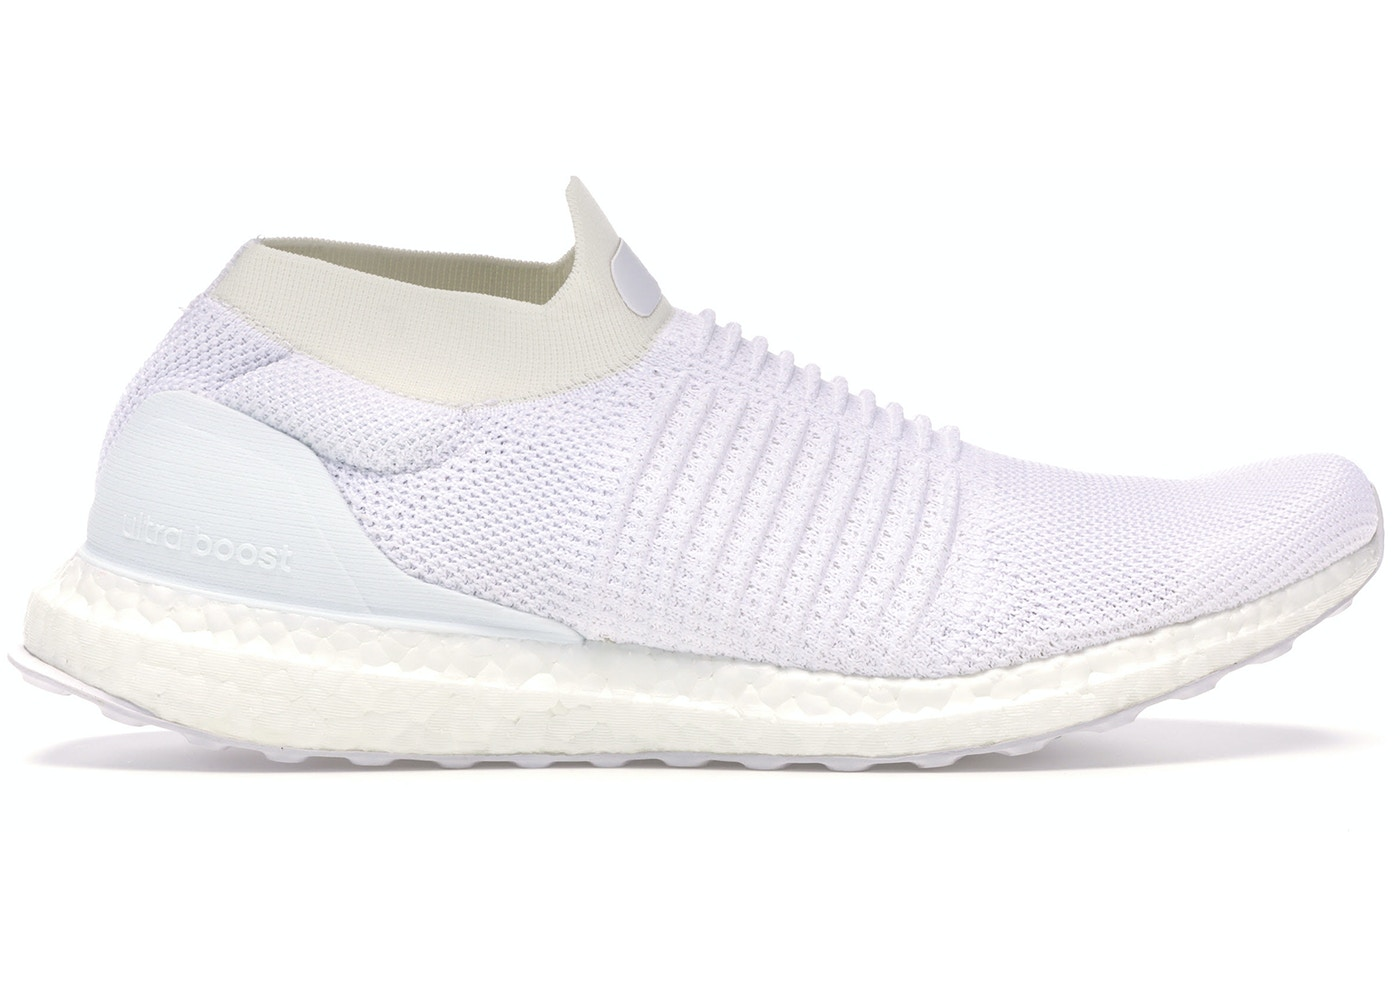 955d16ade61 adidas Ultra Boost Laceless Mid Triple White - S80768